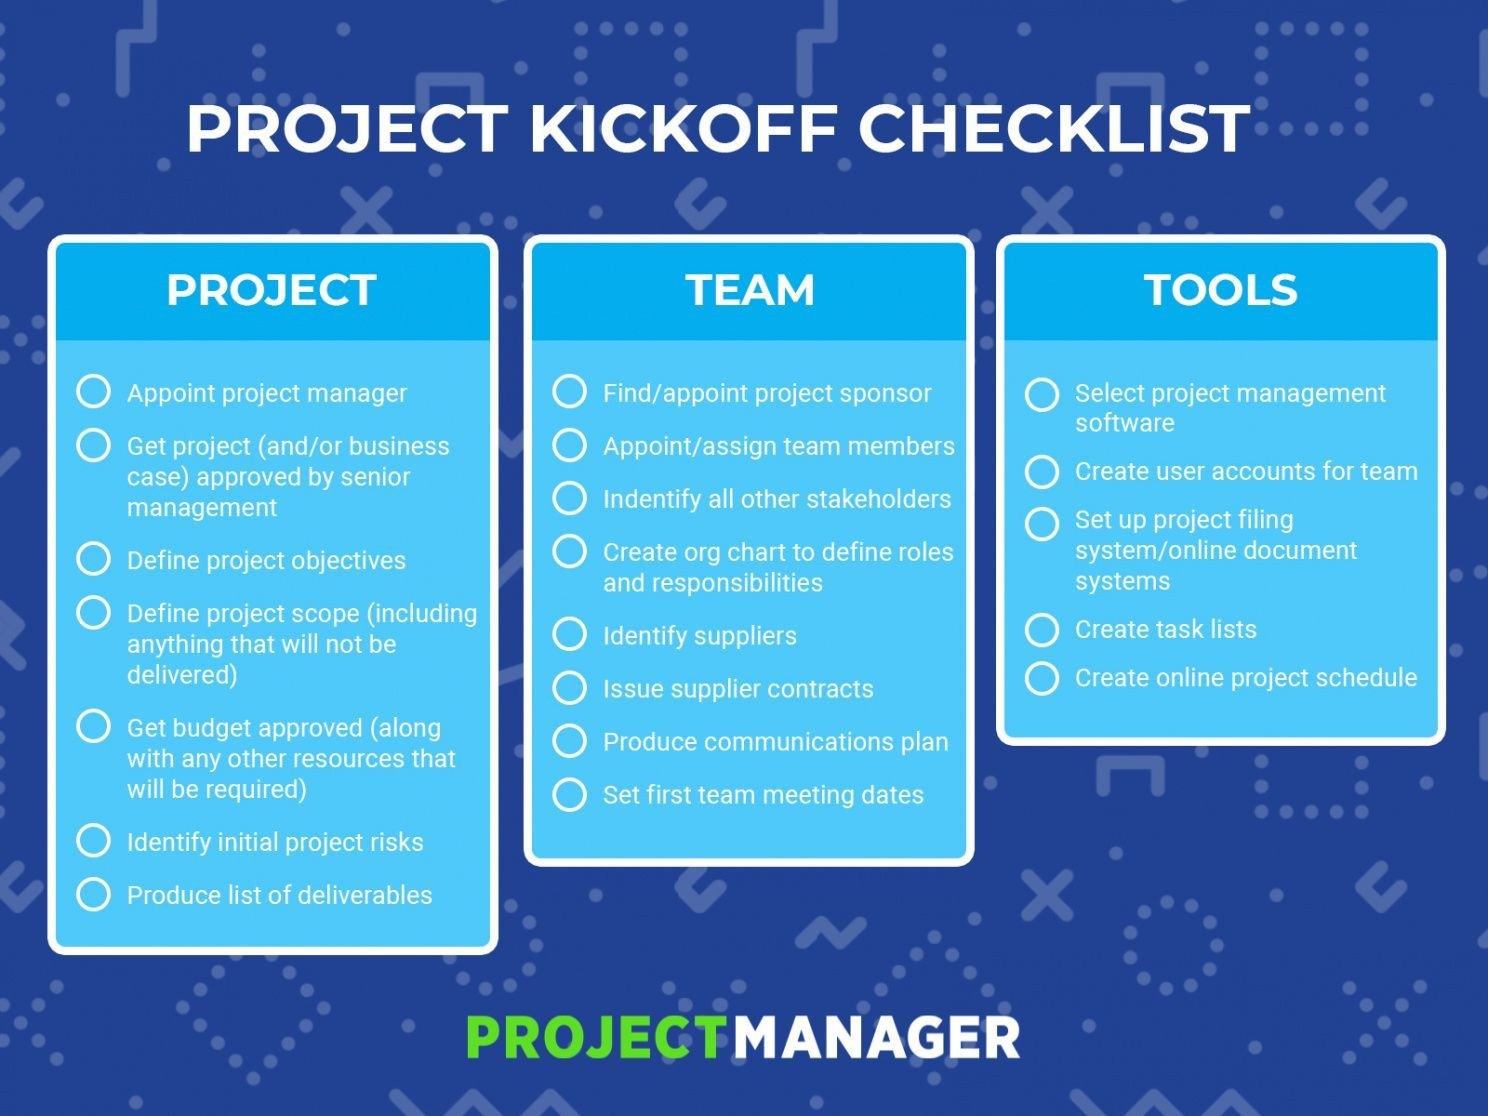 002 Awesome Project Kickoff Meeting Email Template Inspiration  Kick OffFull